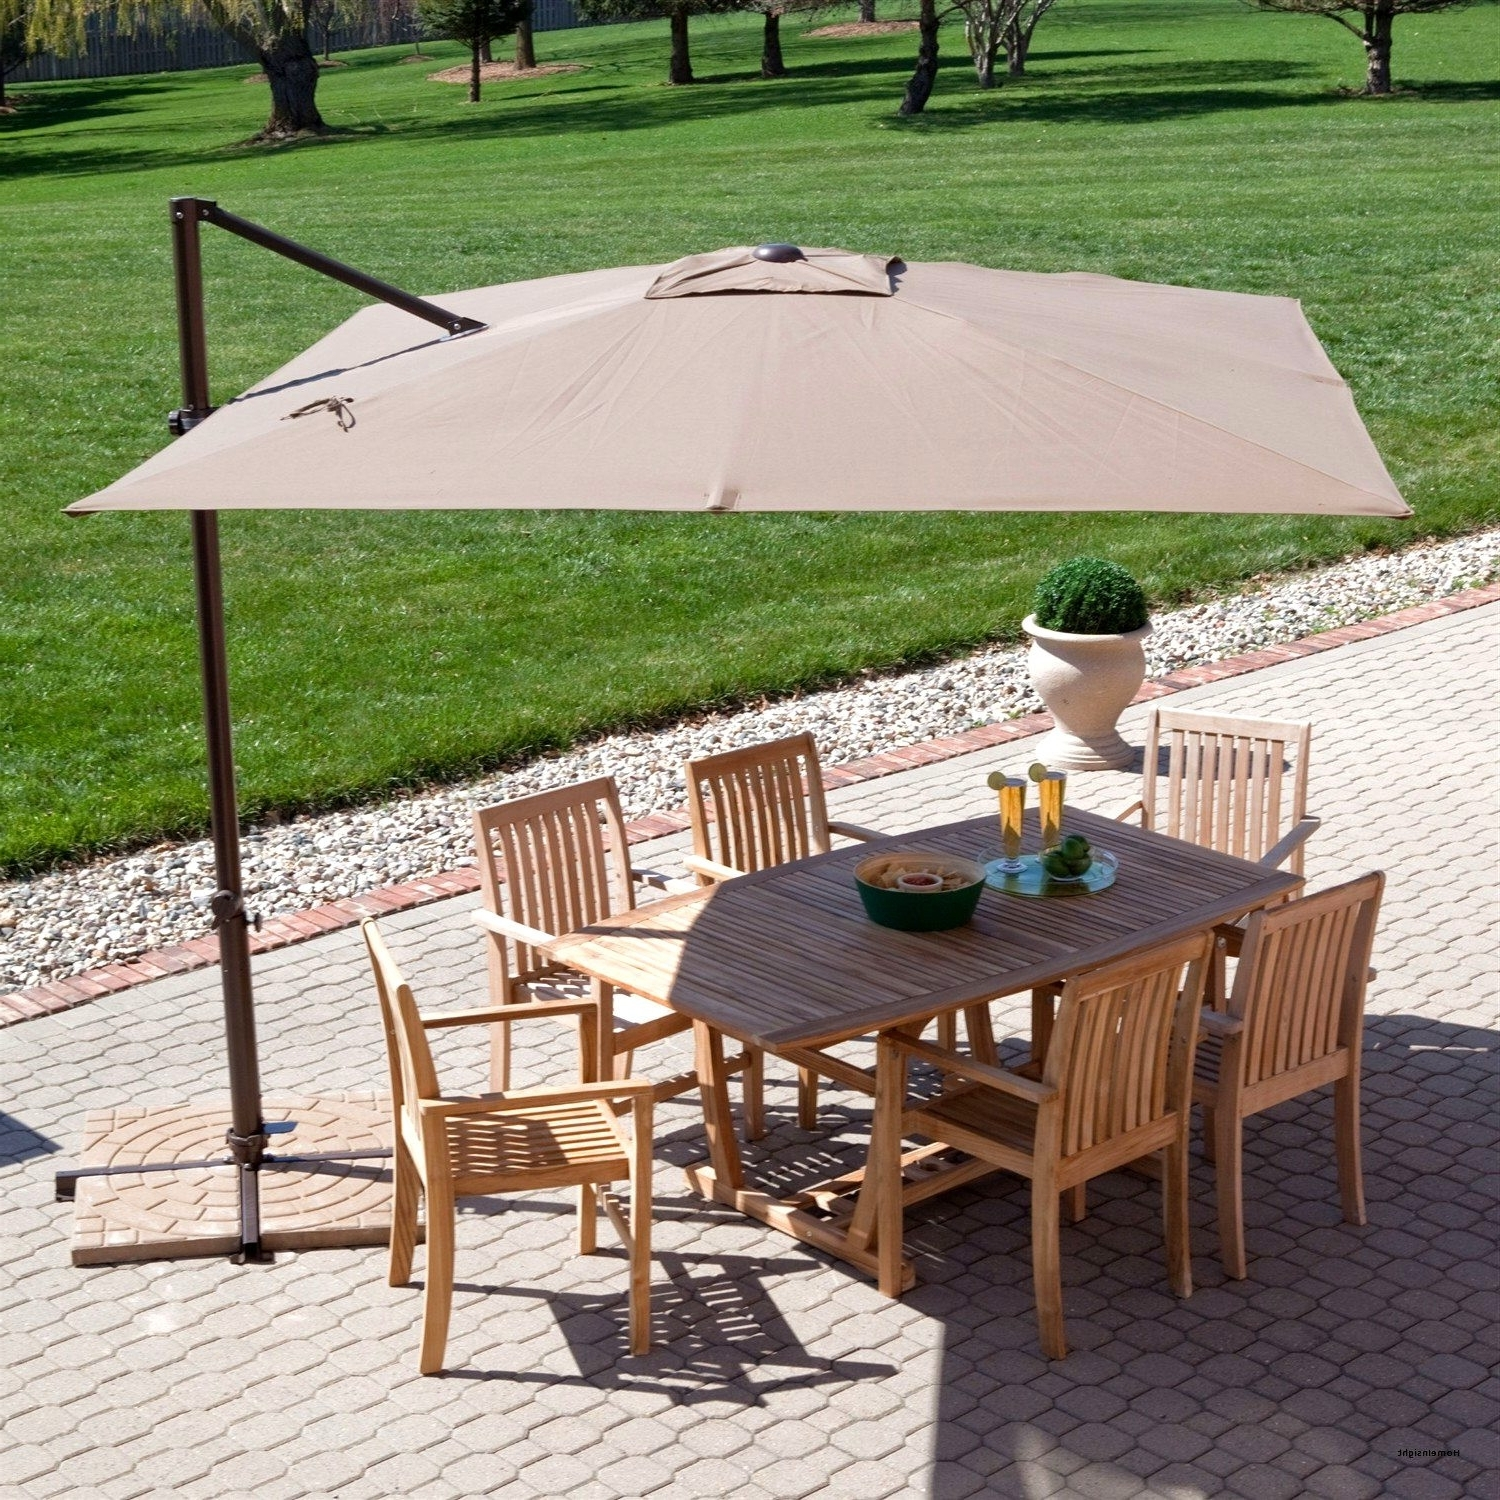 Trendy Big Lots Patio Umbrellas Intended For 25 Fresh Patio Umbrella Big Lots Design Of Coral Coast 8 X 11 Ft (View 13 of 20)